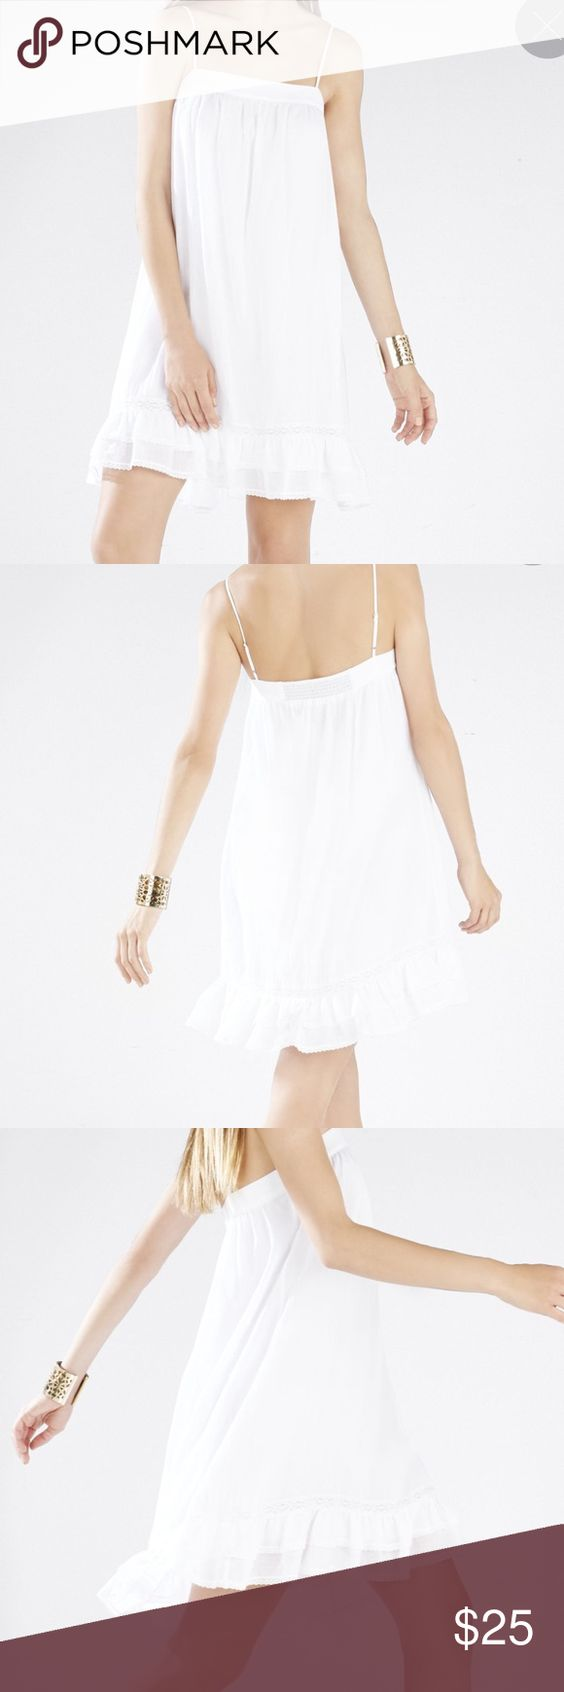 BCBGMAXAZRIA AISHA LACE RUFFLE HEM SLIP DRESS BCBGMAXAZRIA AISHA LACE RUFFLE HEM SLIP DRESS! No zipper, just slips over head. Adjustable straps. BCBGMaxAzria Dresses Mini